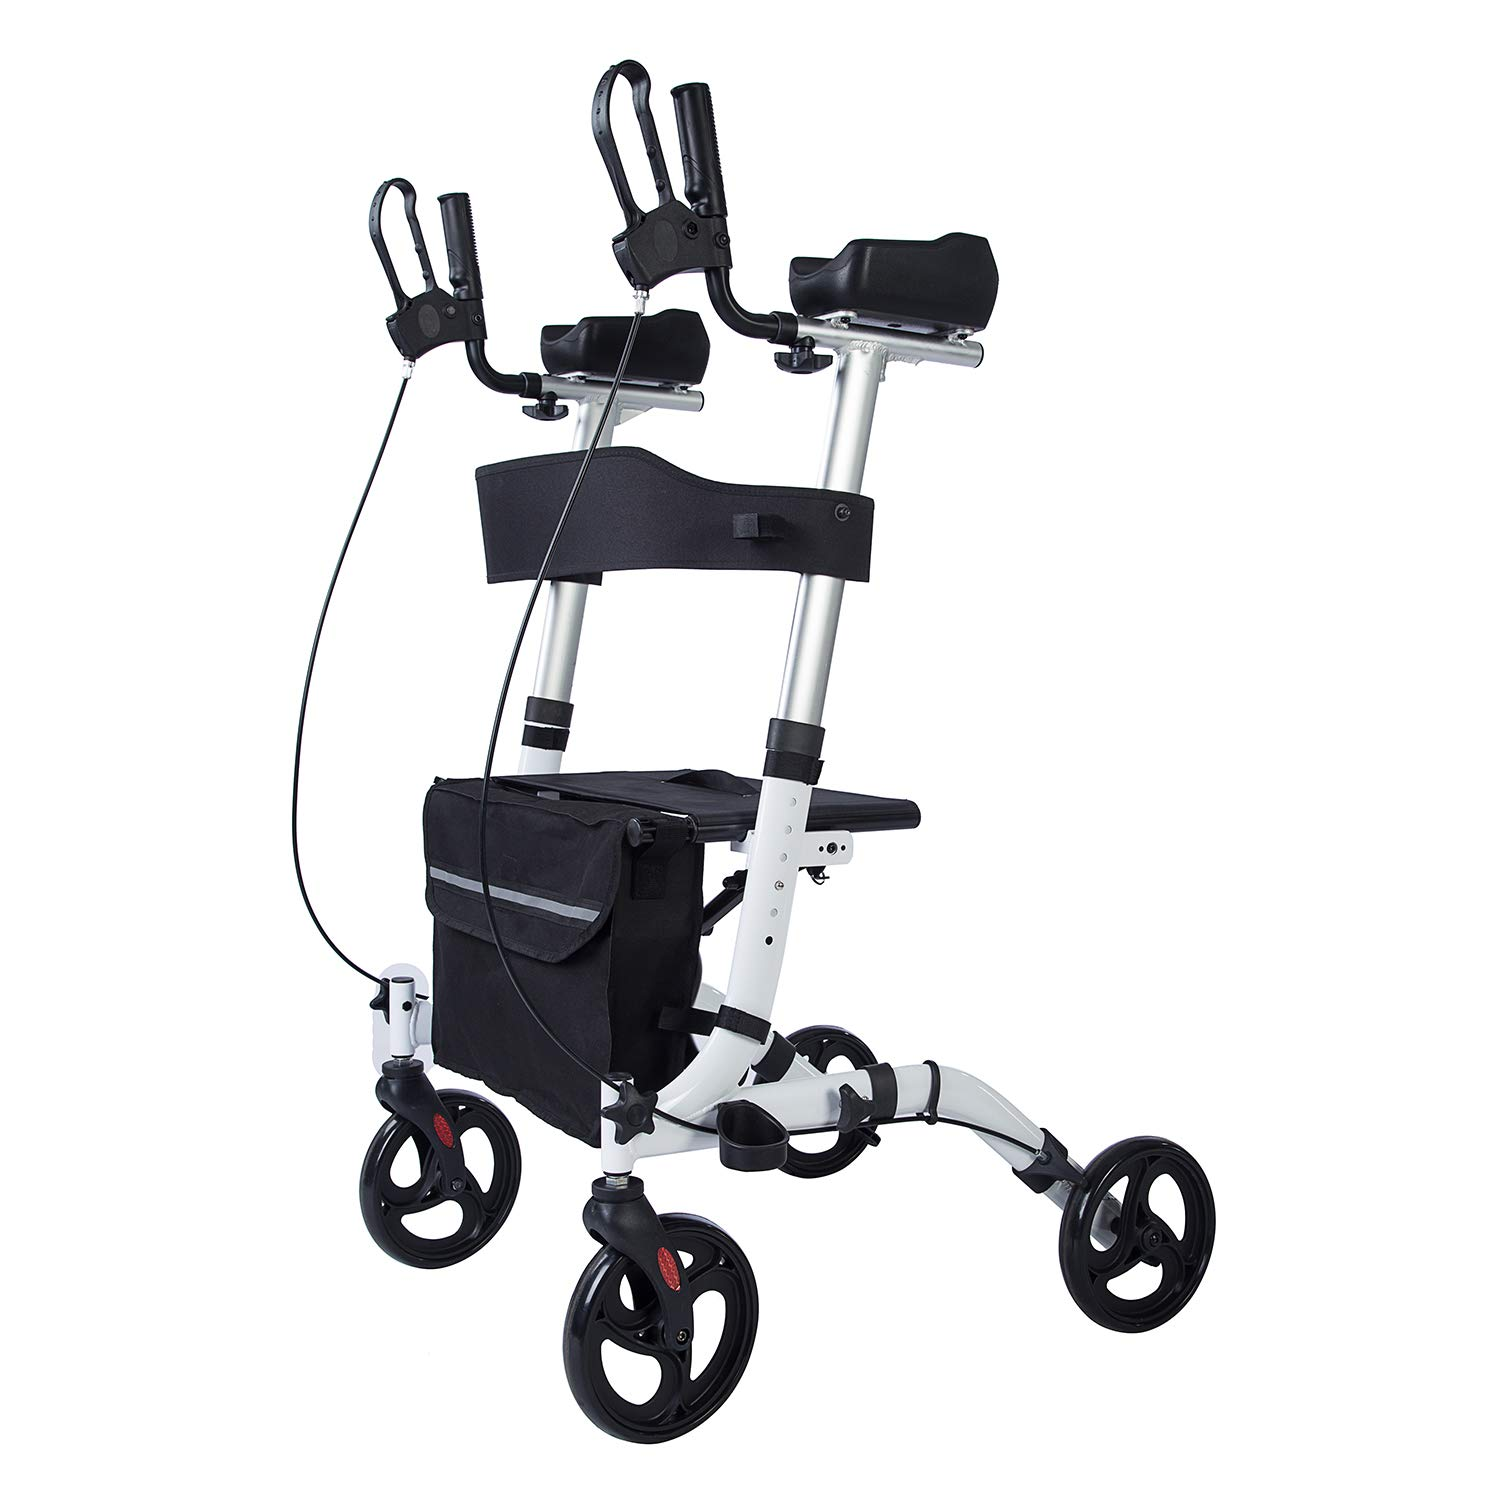 BEYOUR WALKER Upright Rollator Walker Euro Style Stand Up Walking Aid White by BEYOUR WALKER